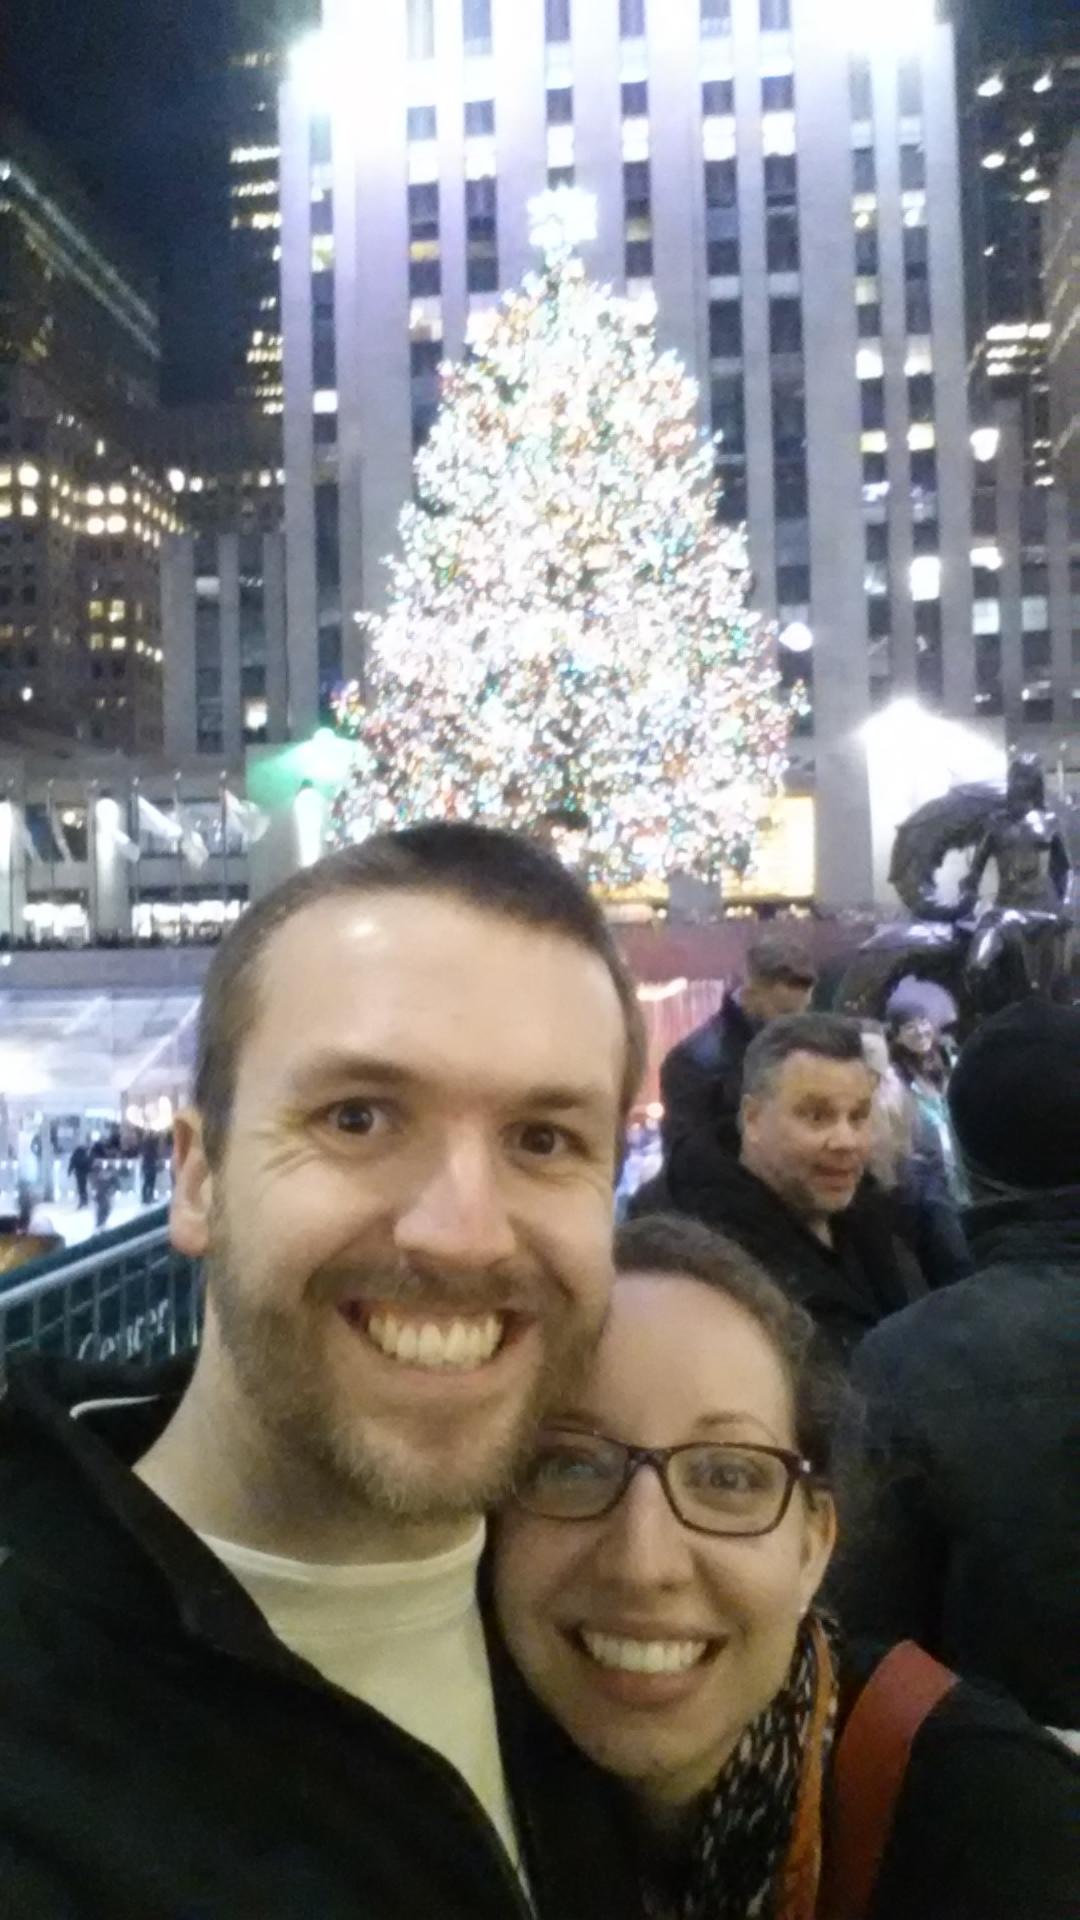 We used our free night to stay at the Intercontinental Times Square on our stopover in New York on our way to Zimbabwe, December 2015